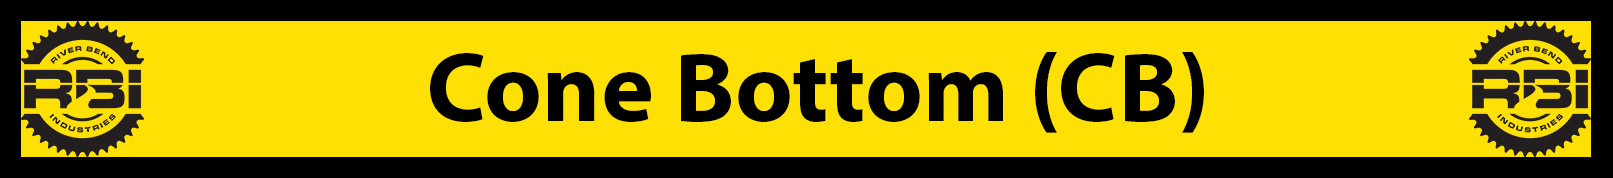 cone-bottom-icon.png